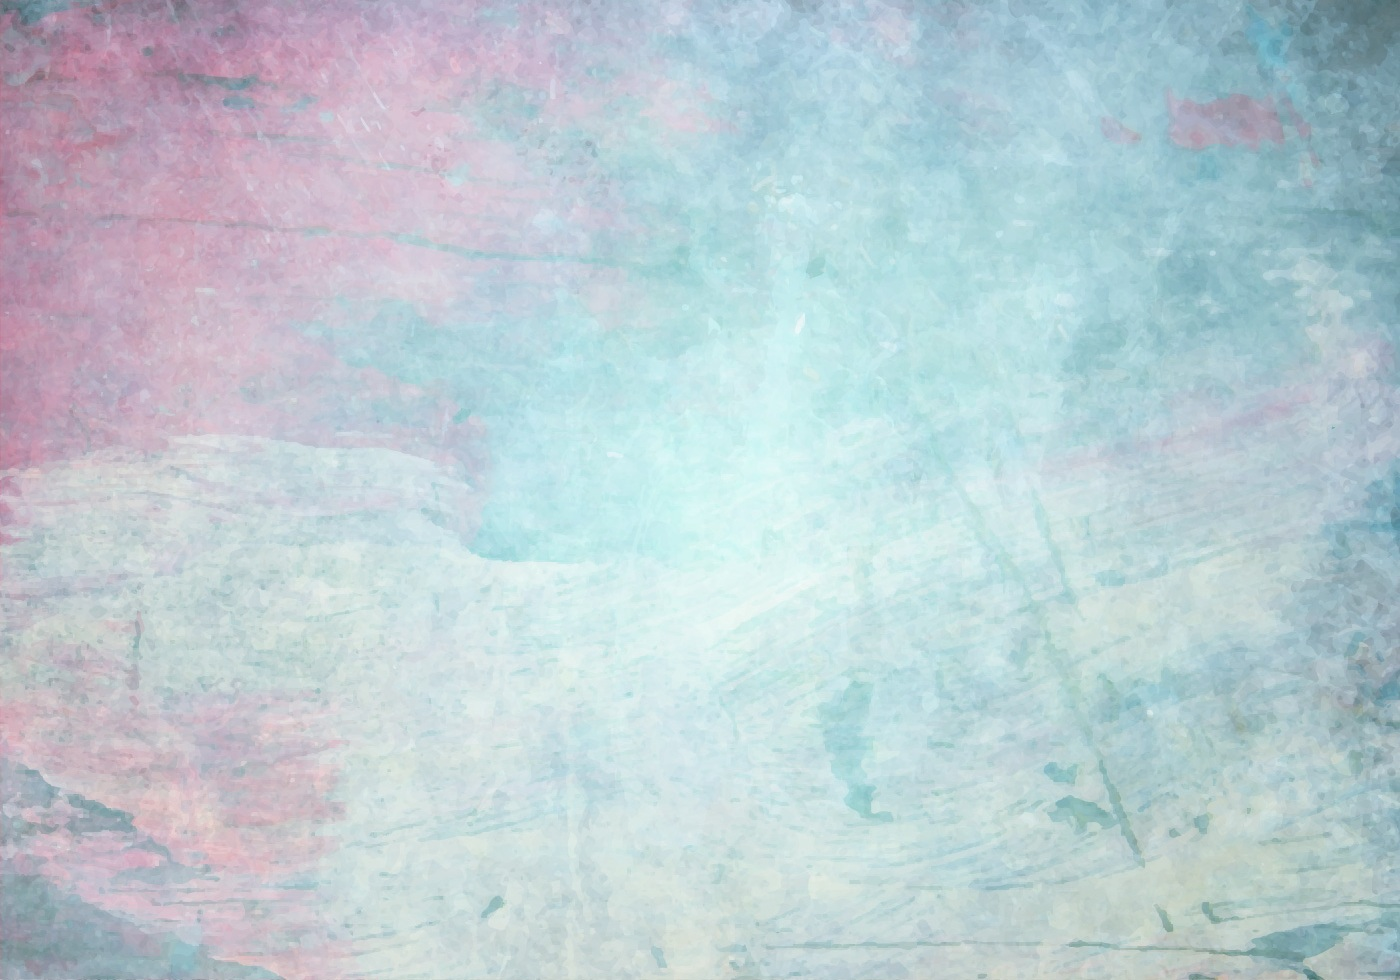 Free vector grunge textura background download free for Textura retro